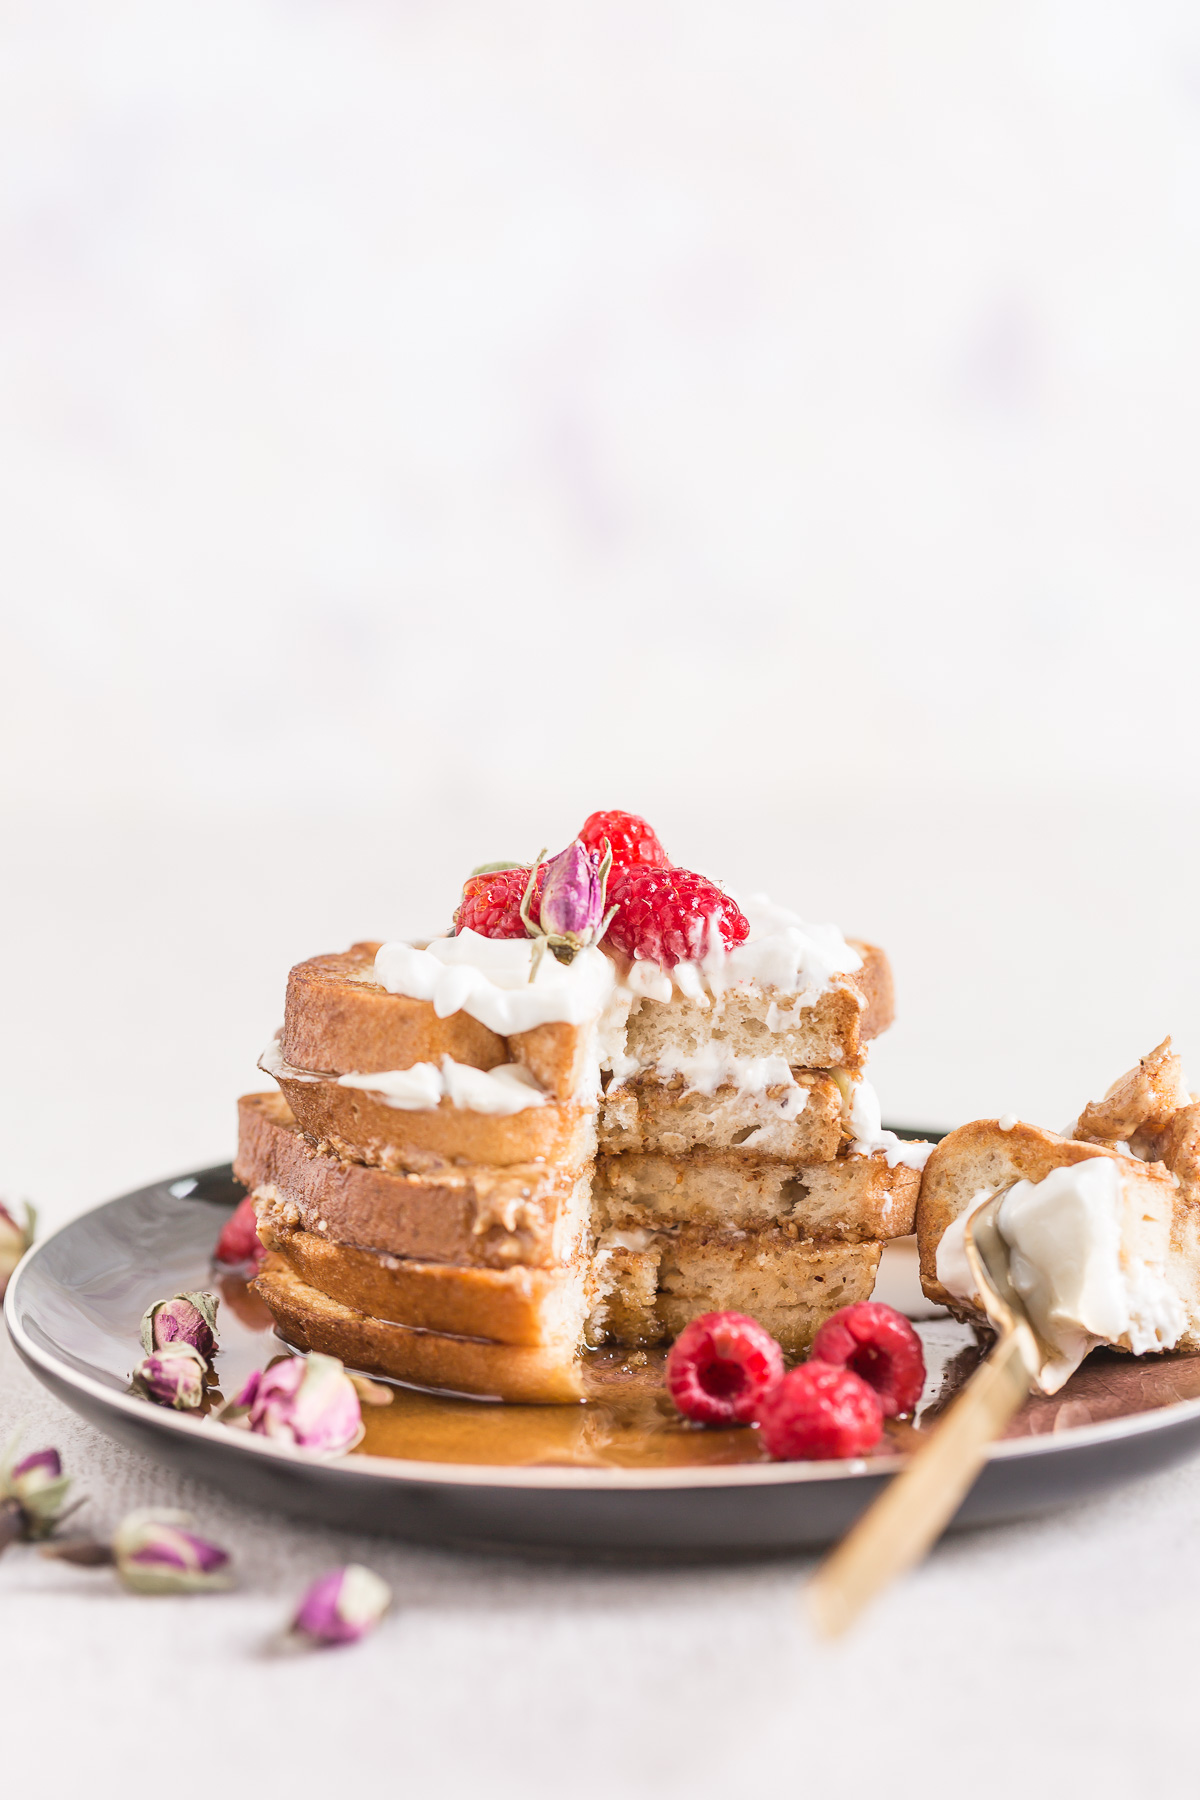 #vegan #glutenfree FRENCH TOAST recipe with vanilla and coconut whipped cream - FRENCH TOAST VEGAN SENZA GLUTINE alla vaniglia in padella e al forno 2